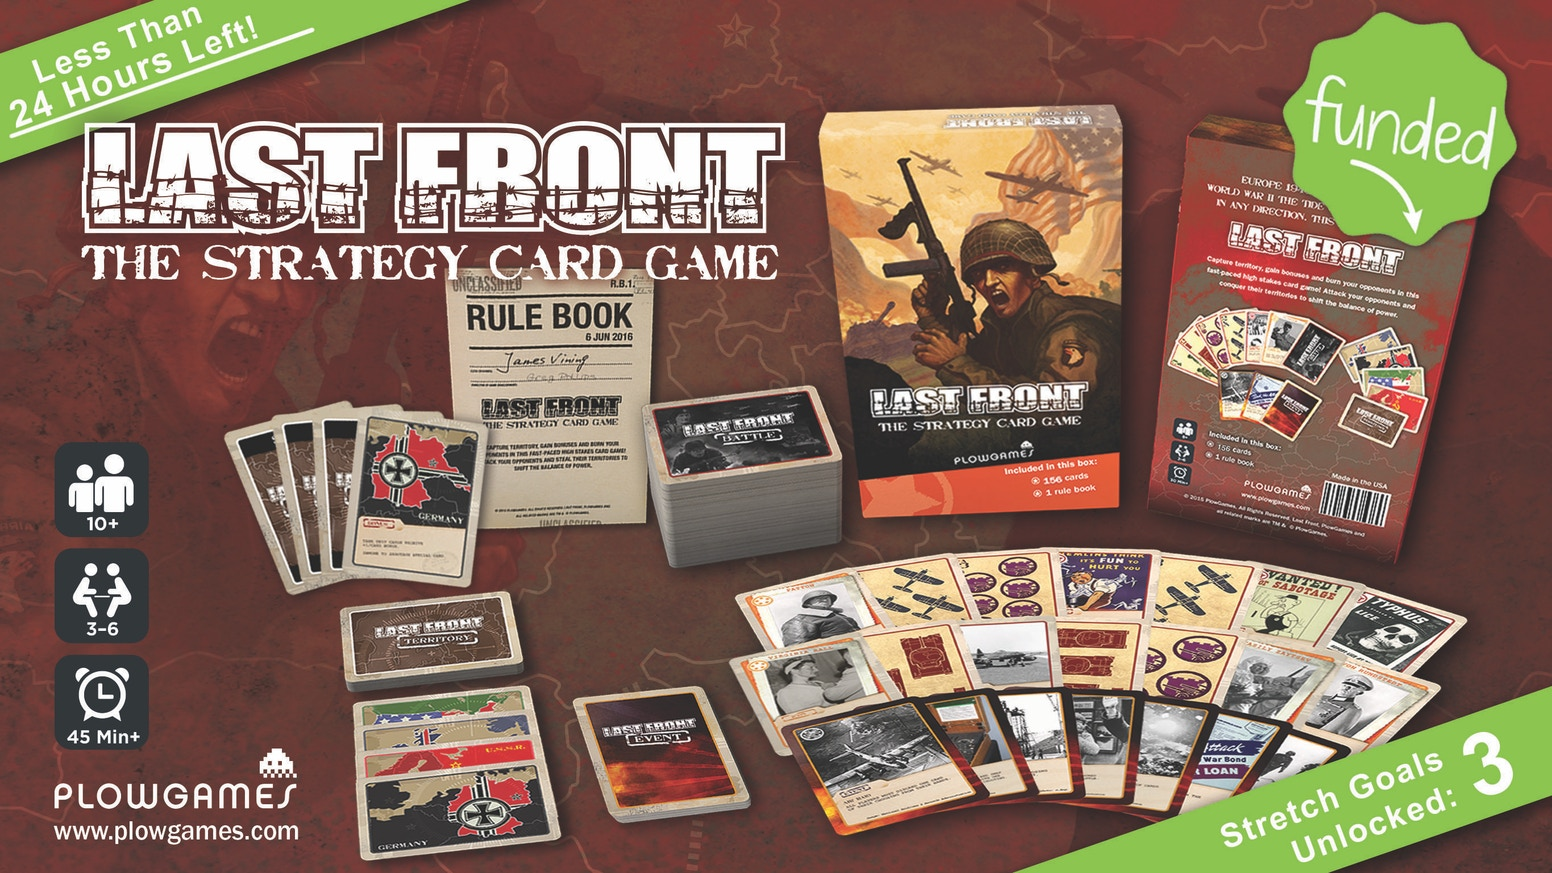 Deploy forces to out bid and out burn your opponents as you capture territories in this fast-paced card game set during WWII!